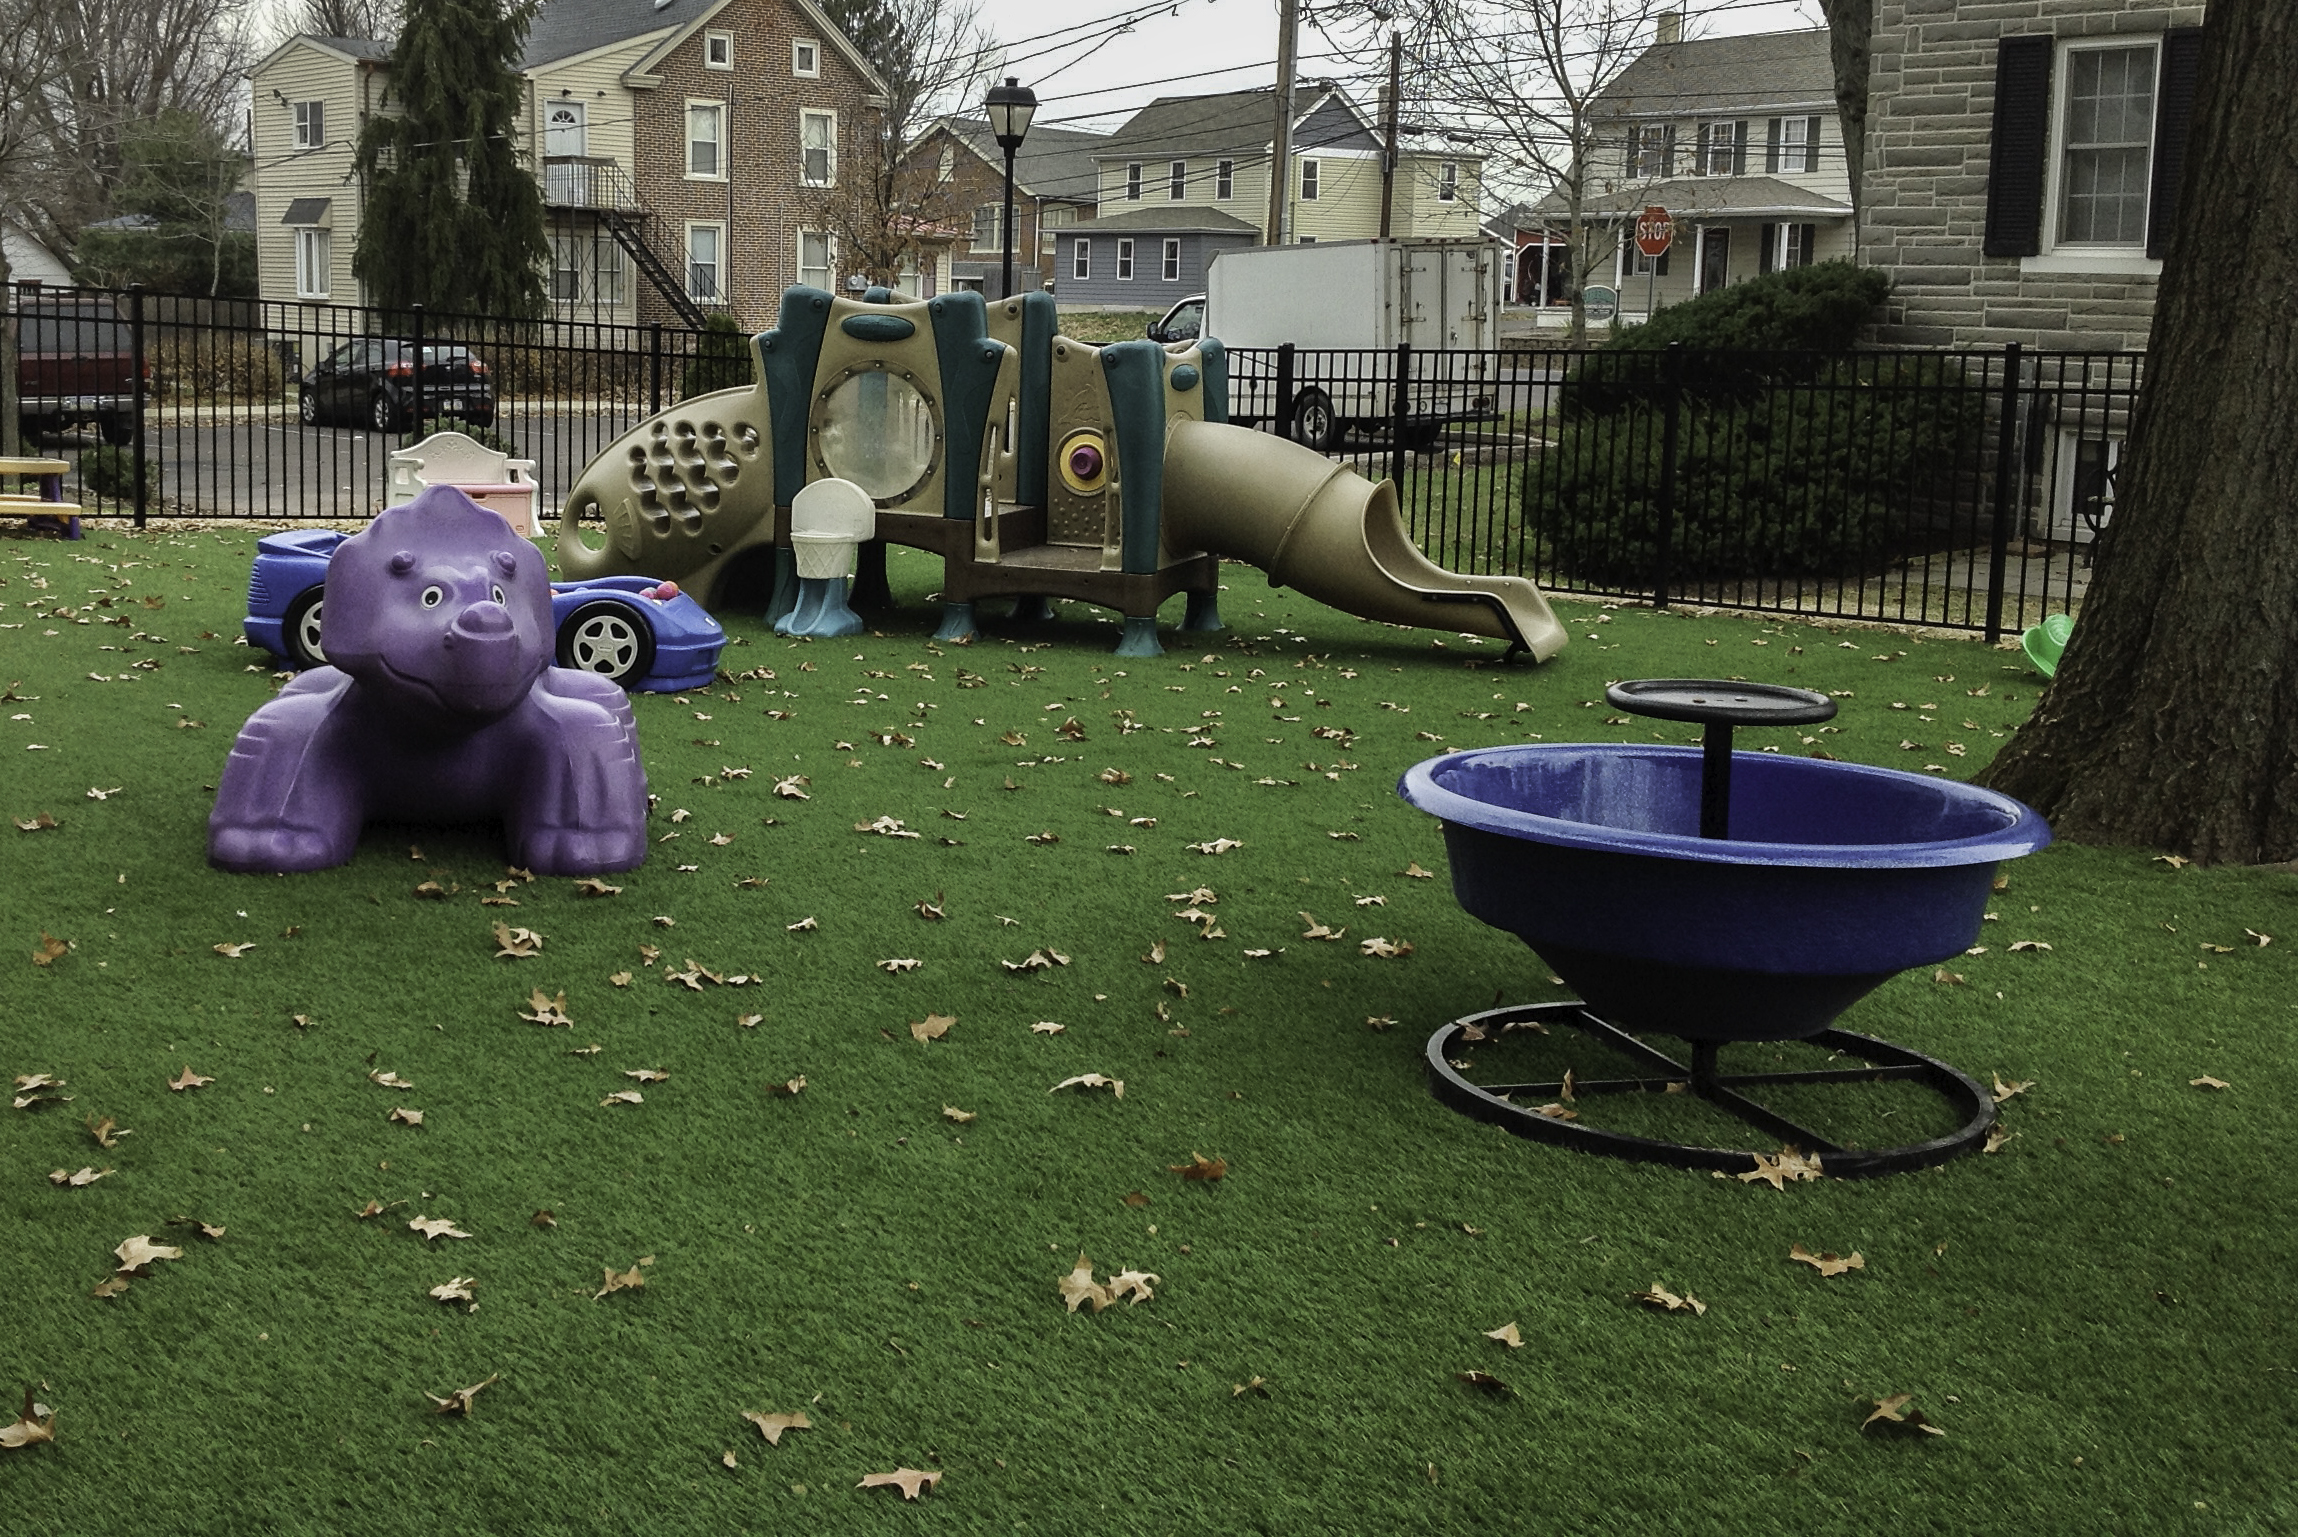 Enclosed Philadelphia day care play area with artificial turf surface